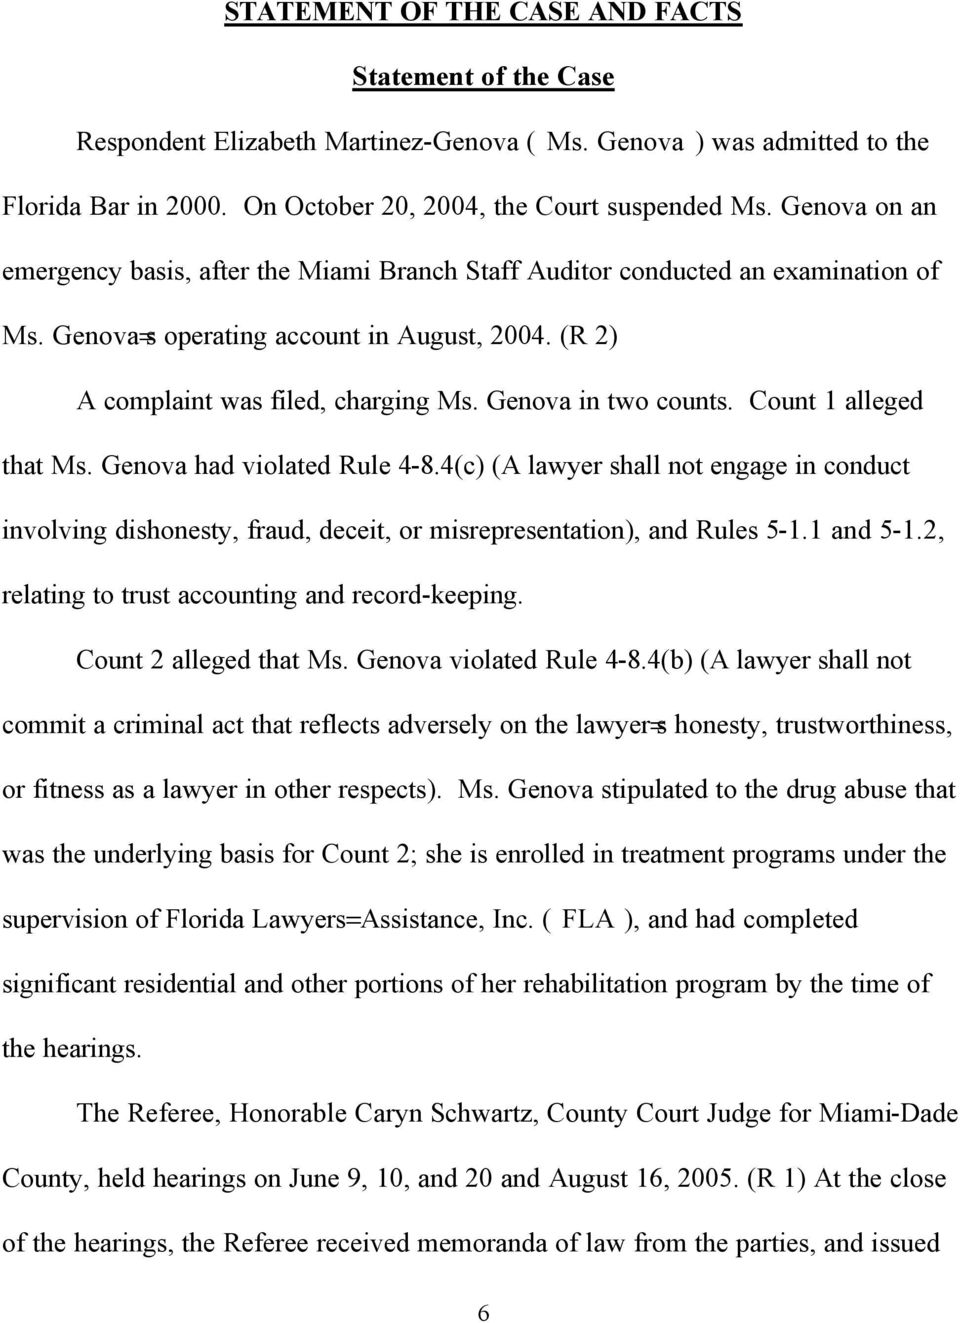 Genova in two counts. Count 1 alleged that Ms. Genova had violated Rule 4-8.4(c) (A lawyer shall not engage in conduct involving dishonesty, fraud, deceit, or misrepresentation), and Rules 5-1.